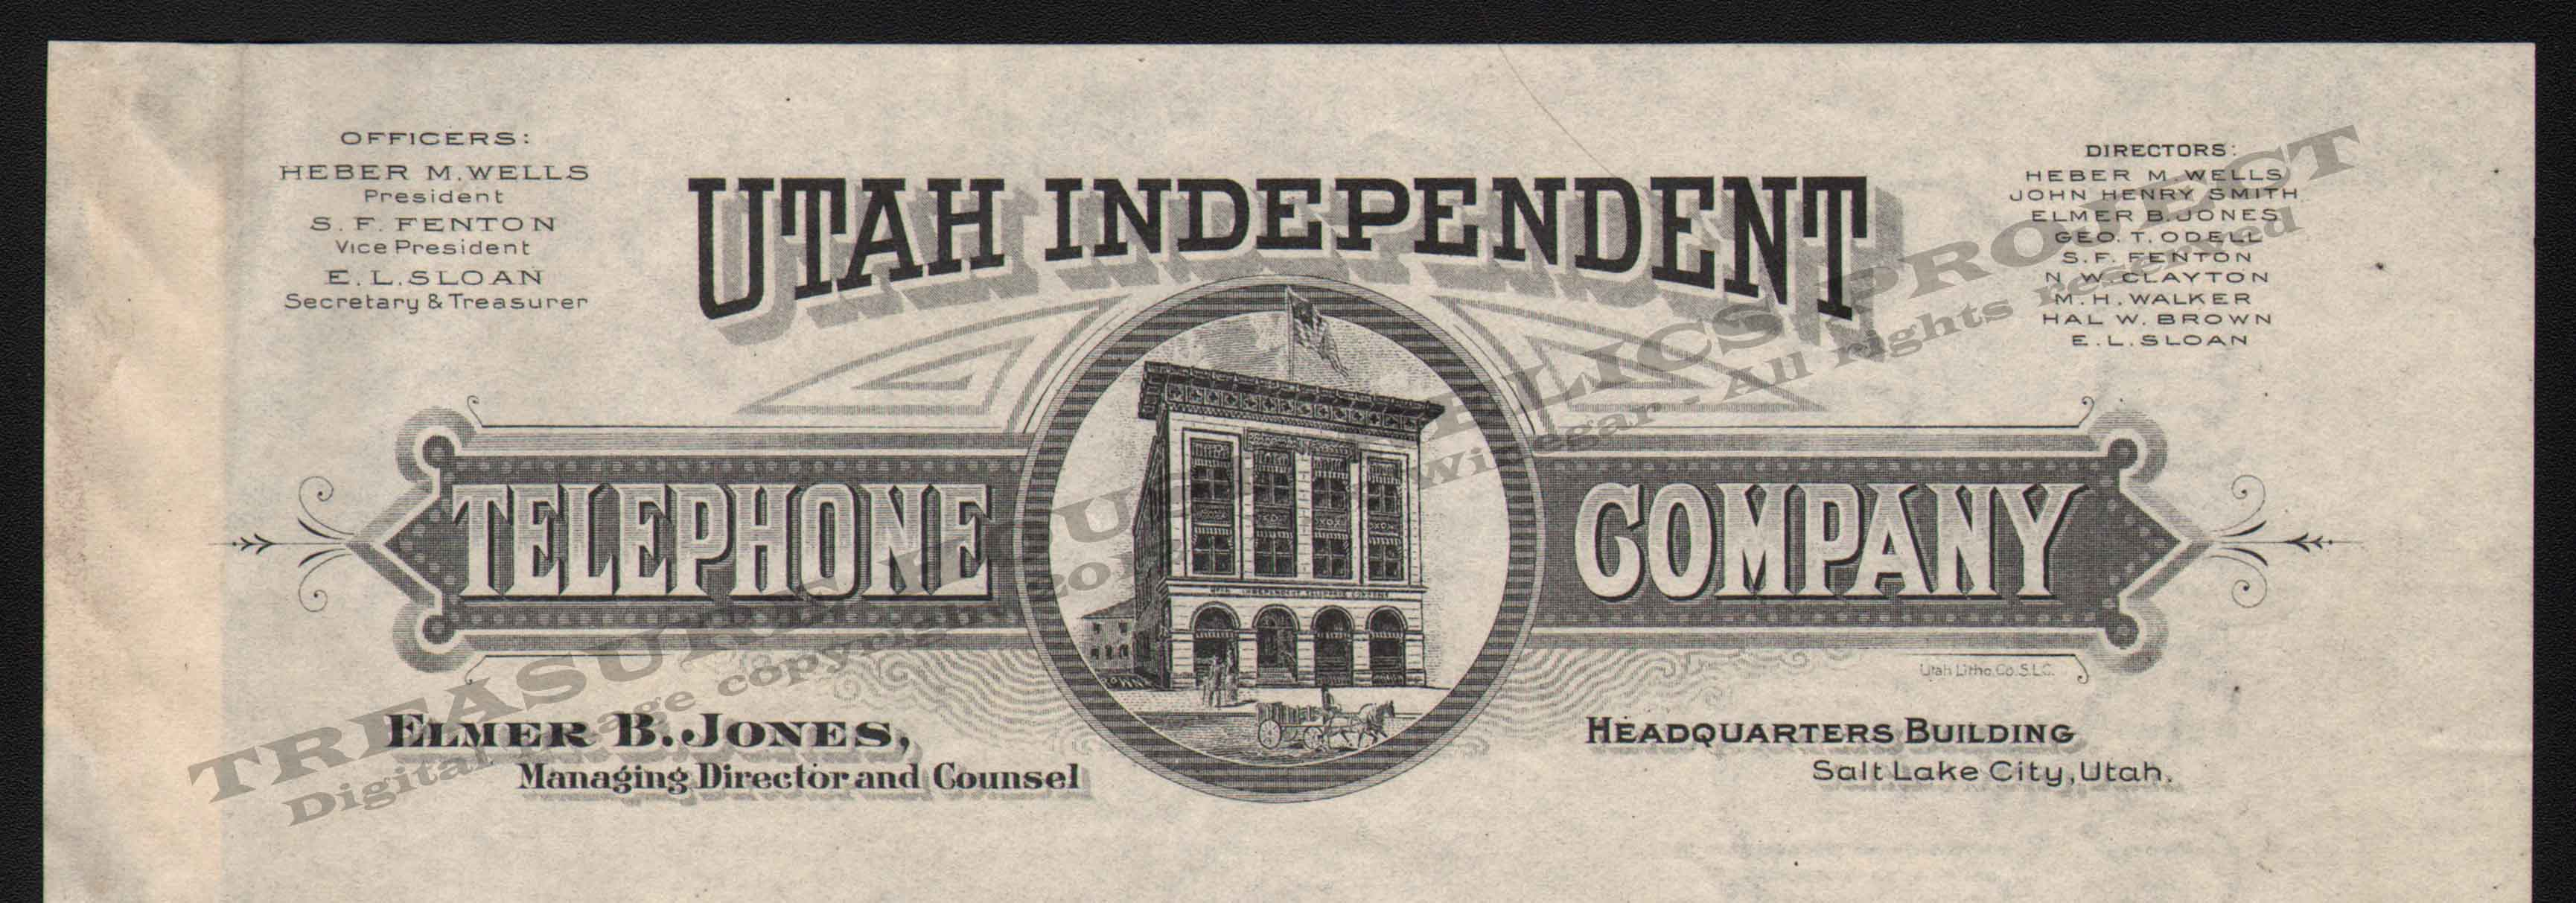 LETTERHEAD/LETTERHEAD_UTAH_NATIONAL_BANK_1_7_1904_400_CROP_EMBOSS.jpg